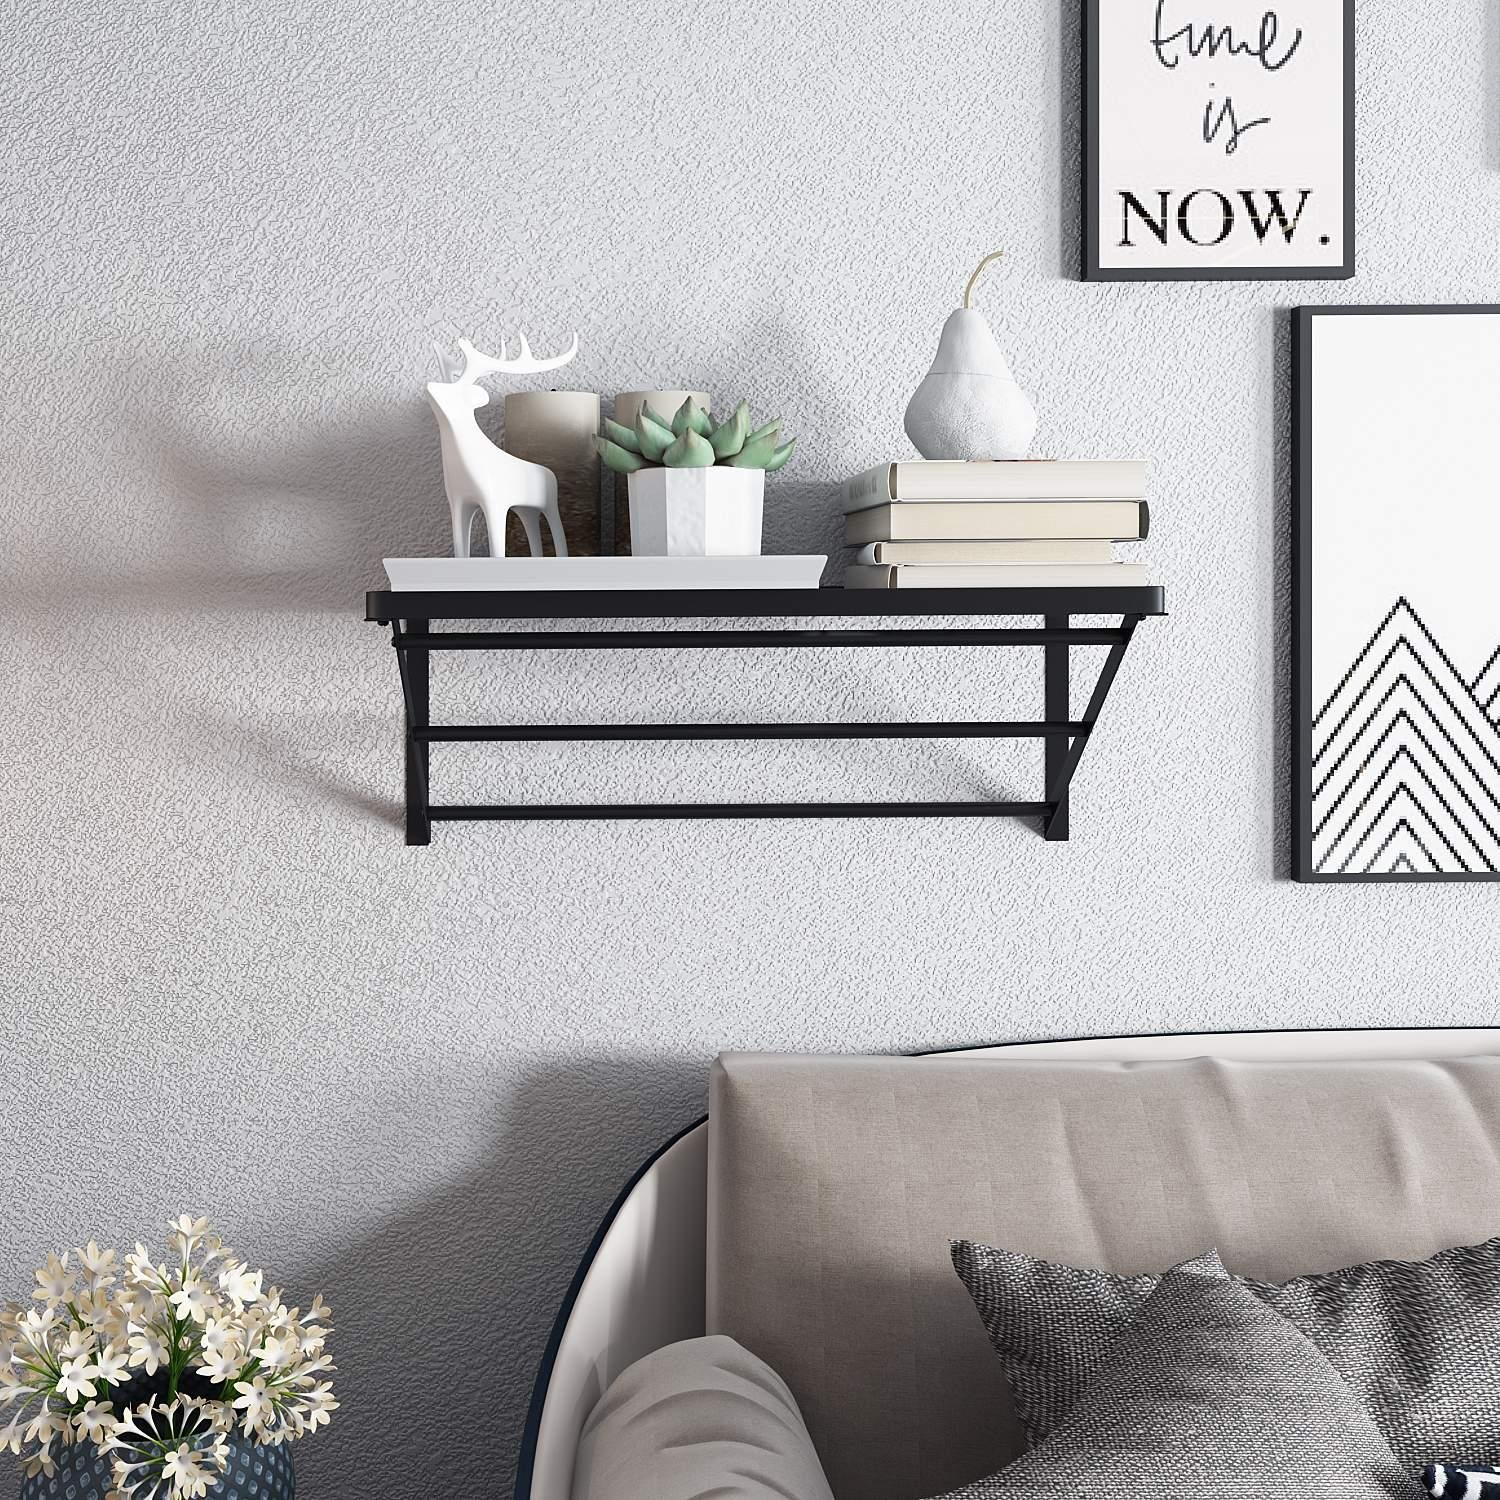 Utheing Kitchen Wall Mount Pot Storage Rack Pans Organizer Hanger with 10 Hook for Kitchen Cookware, Utensils, Pans and Books by Utheing (Image #3)